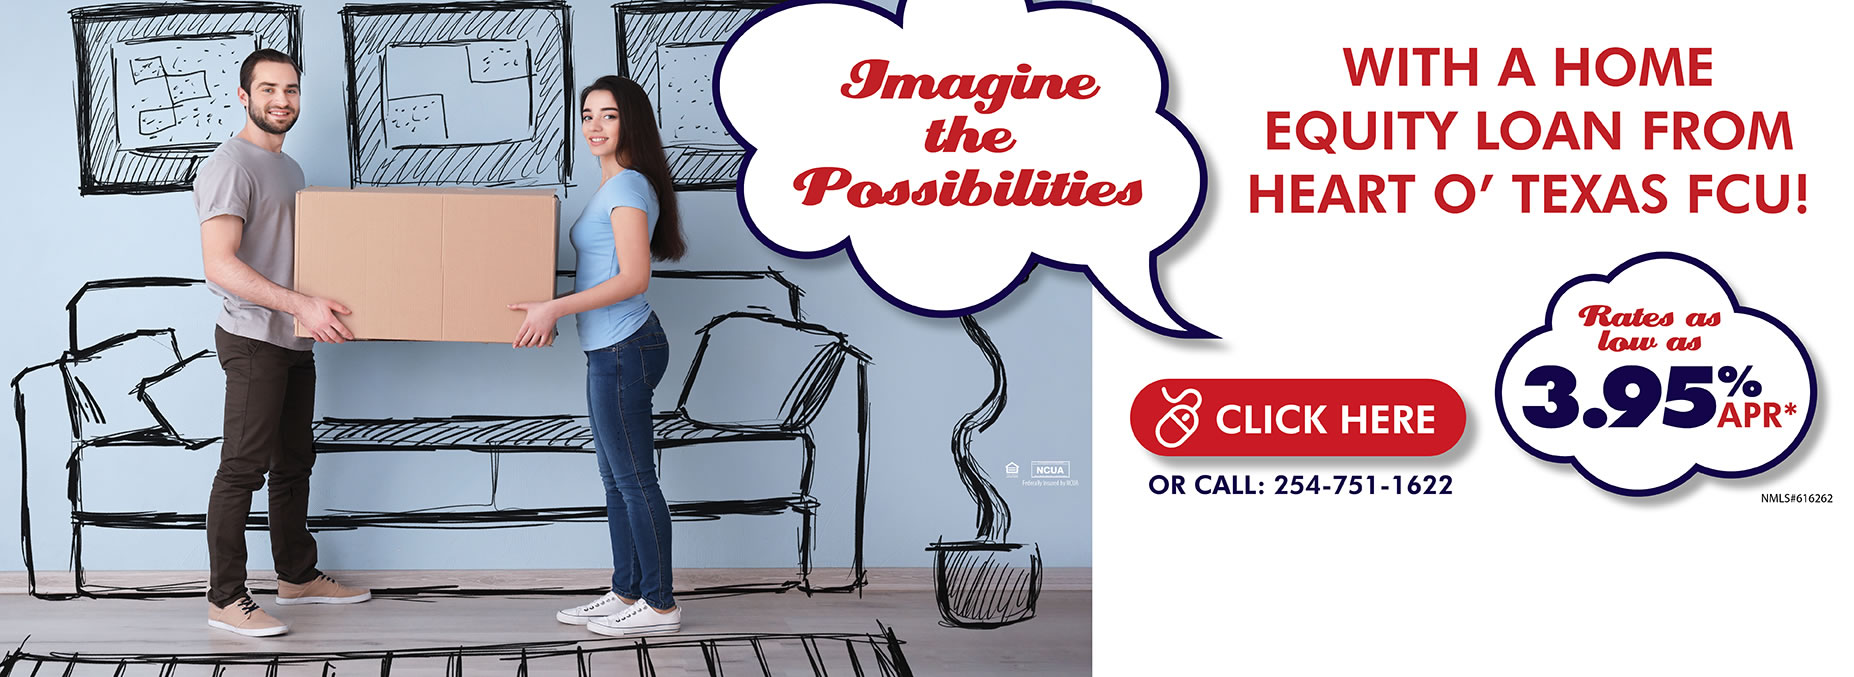 Imagine the Possibilities of a Home Equity Loan from HOTFCU!